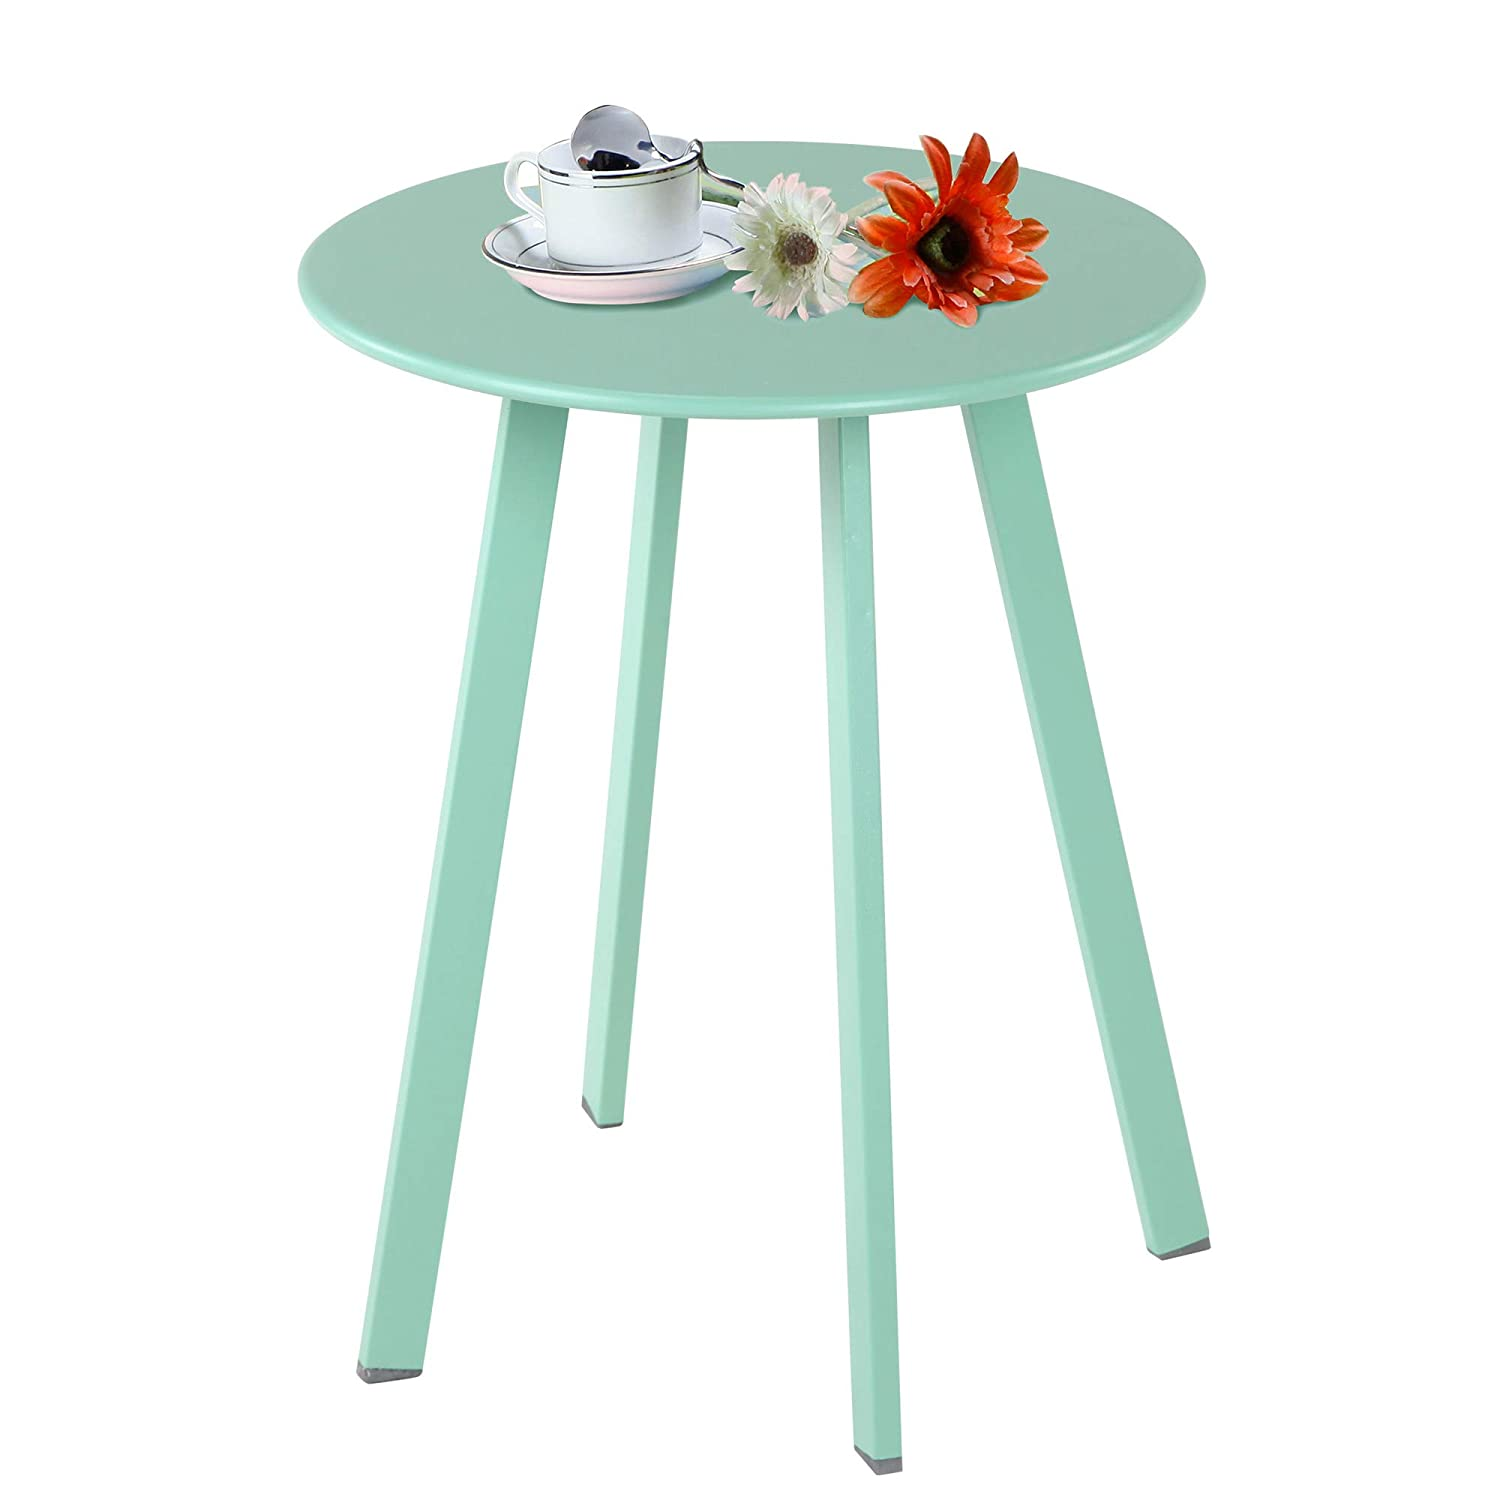 Grand Patio Steel Patio Coffee Table Weather Resistant Outdoor Side Table Tall Sized Round End Table Mint Green